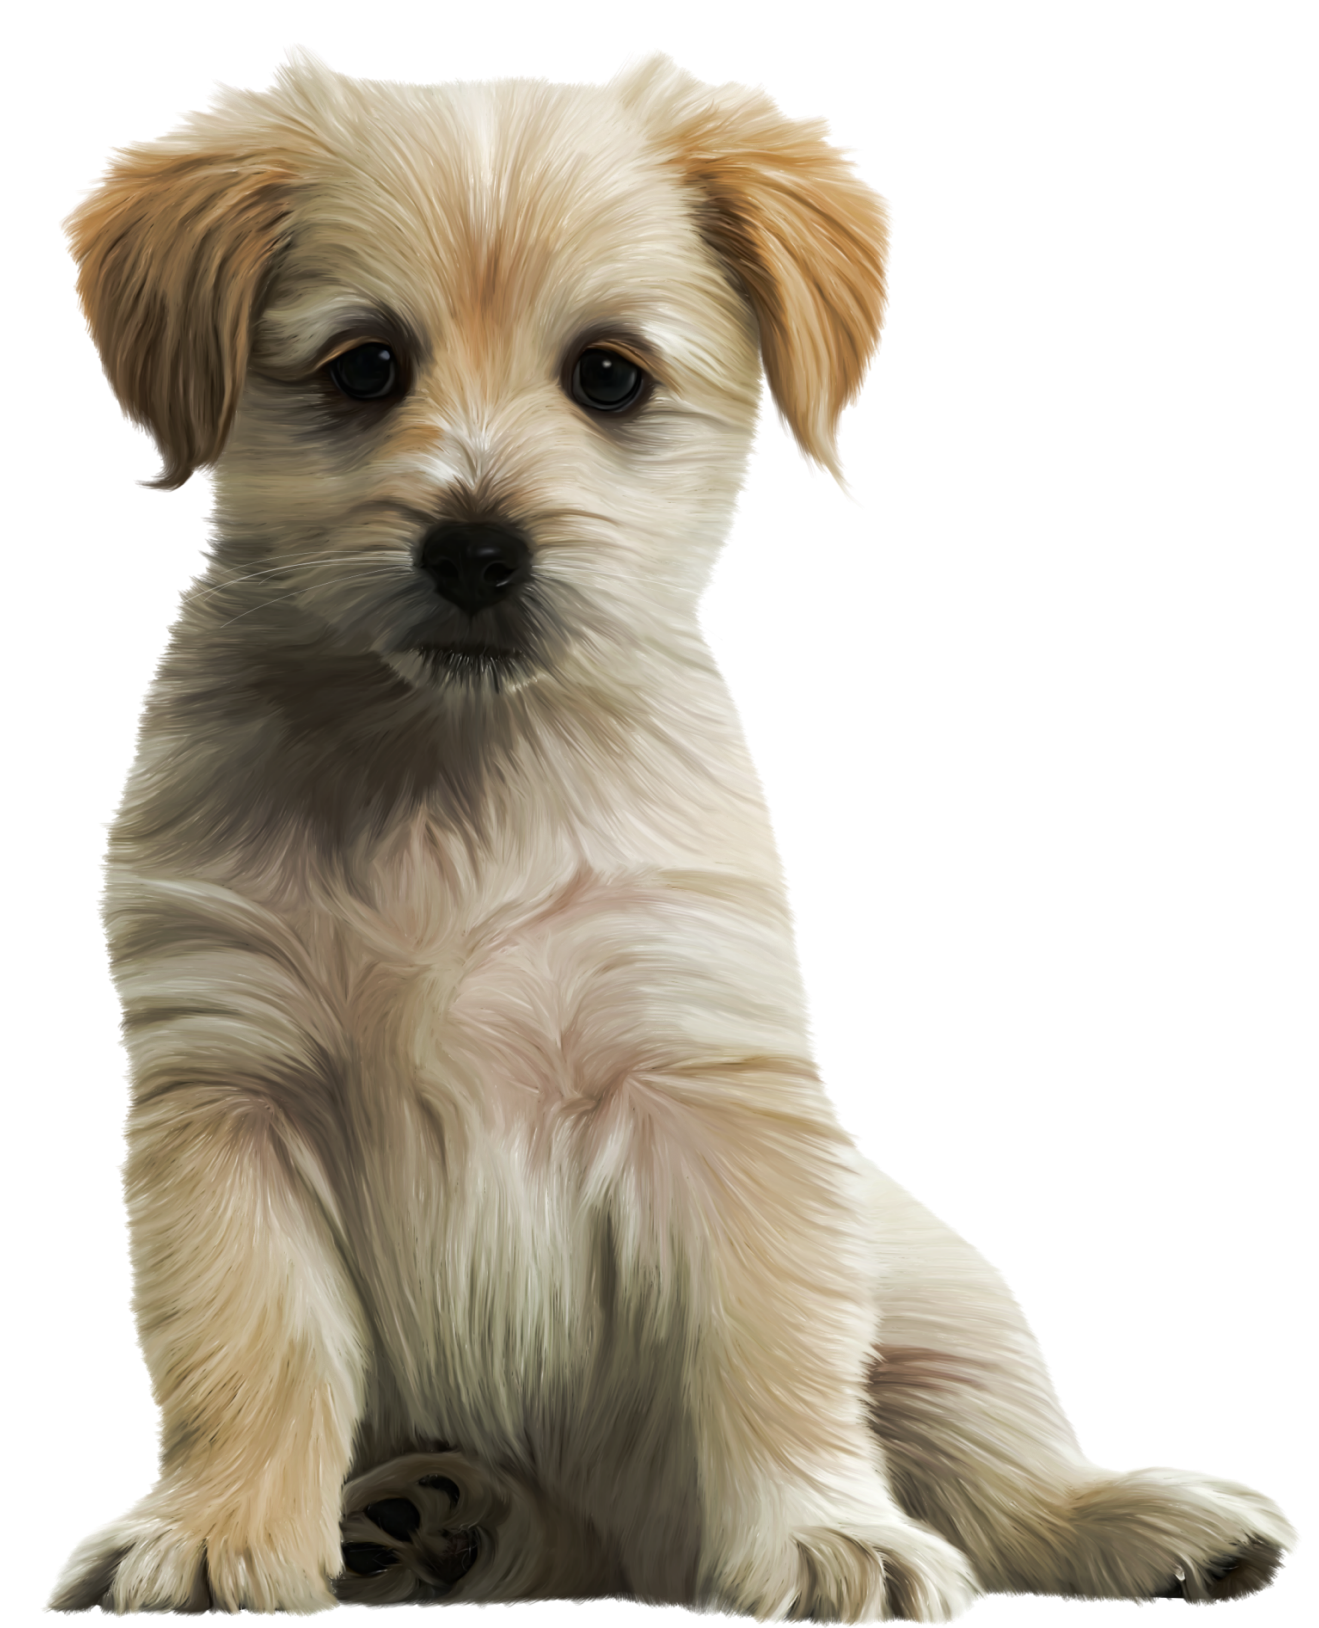 Cute Puppy Png Clipart Image Transparent Free Download - Puppy PNG HD